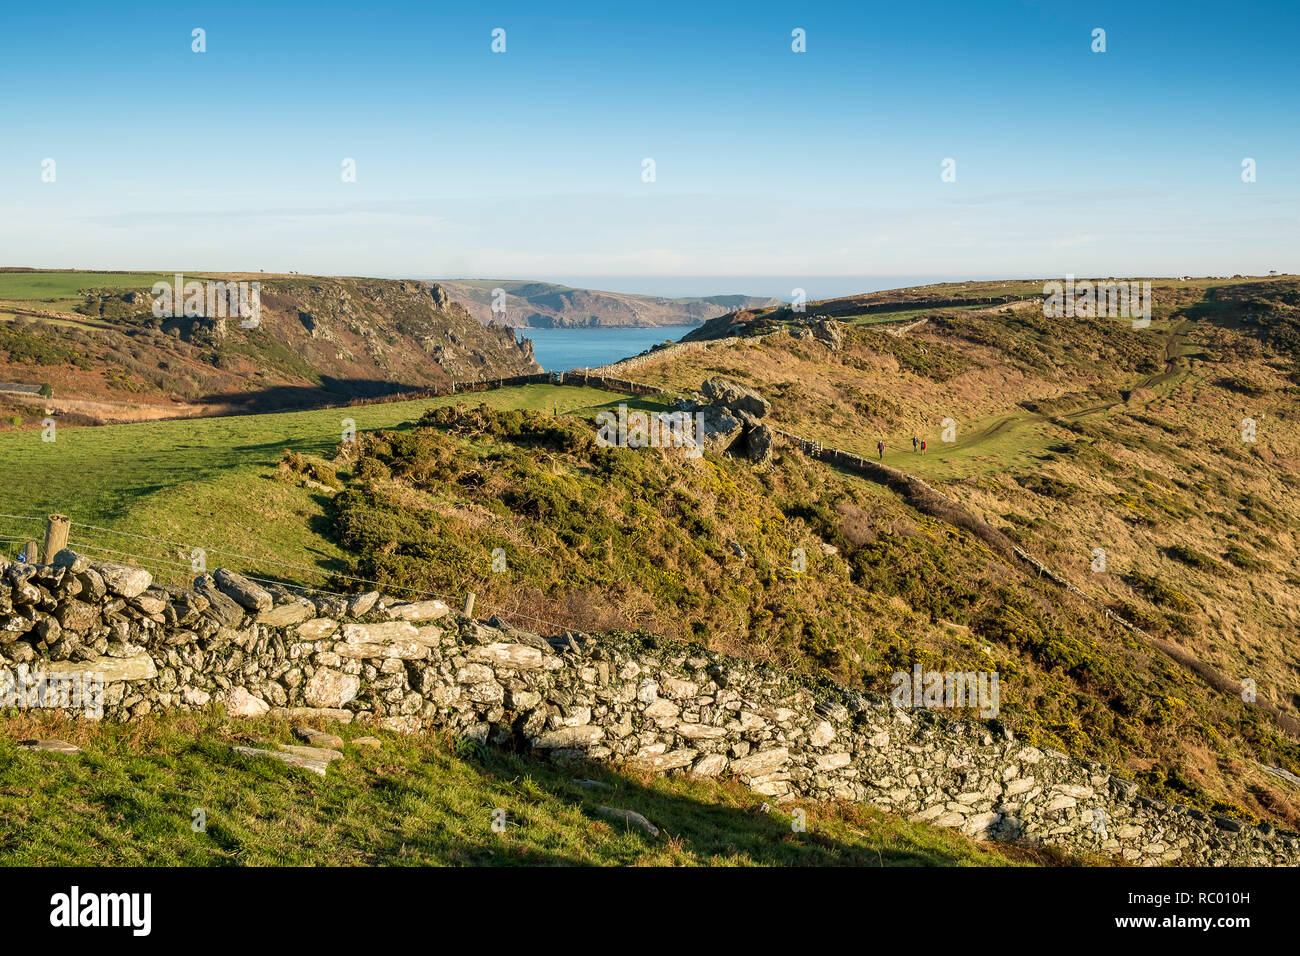 Rocky pasture divided with dry stone walls. Bolt Head, Salcombe, South Hams. Devon. UK - Stock Image